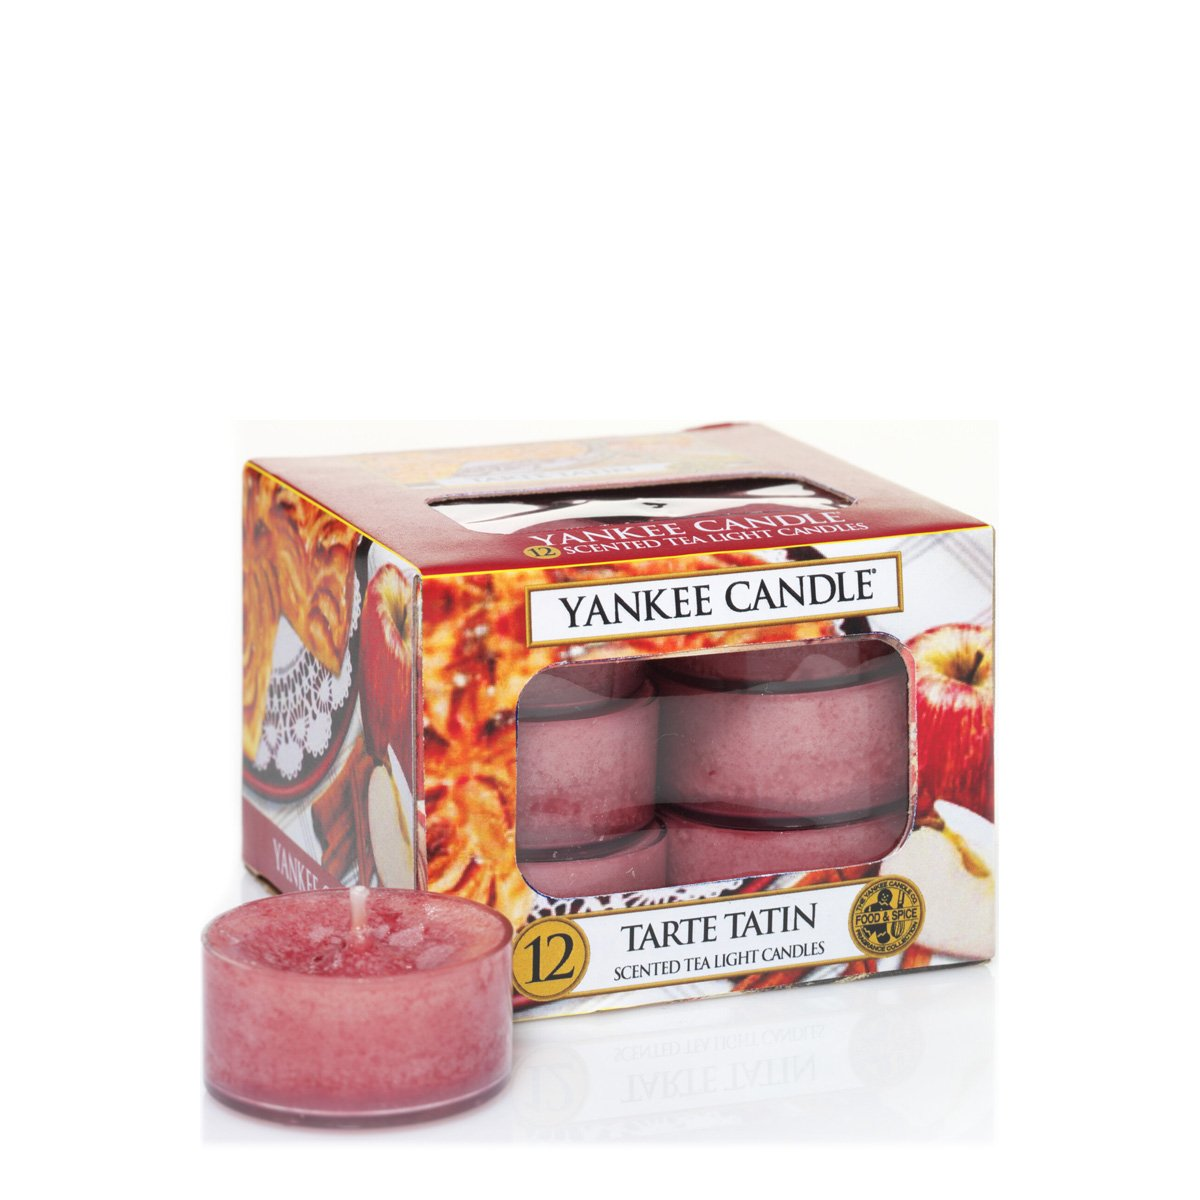 Soy Wax Vanilla Scented 12 Pack Tea Light Candles